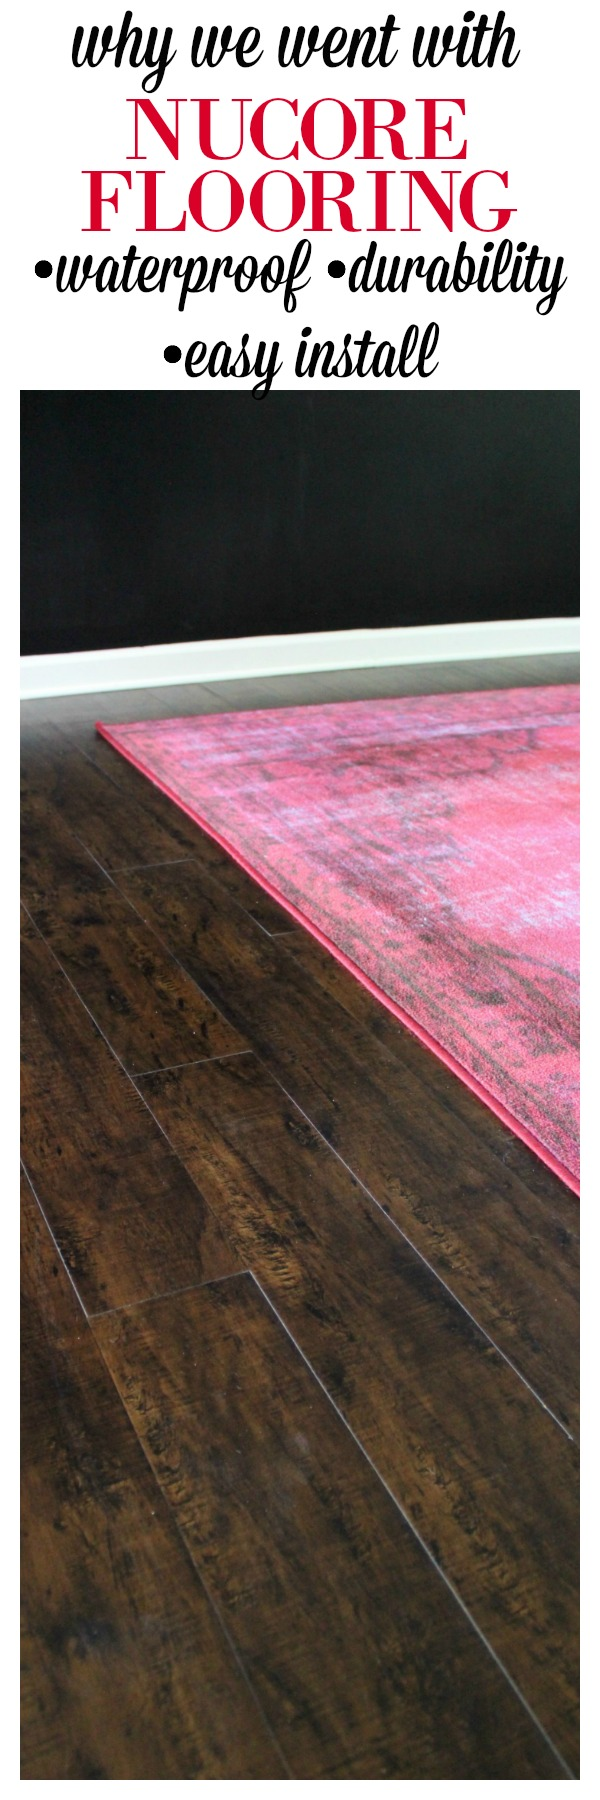 NuCore Flooring Review | Luxury Vinyl Wood Flooring | Luxury Vinyl Flooring | Luxury Laminate Flooring | Luxury Vinyl Plank Flooring